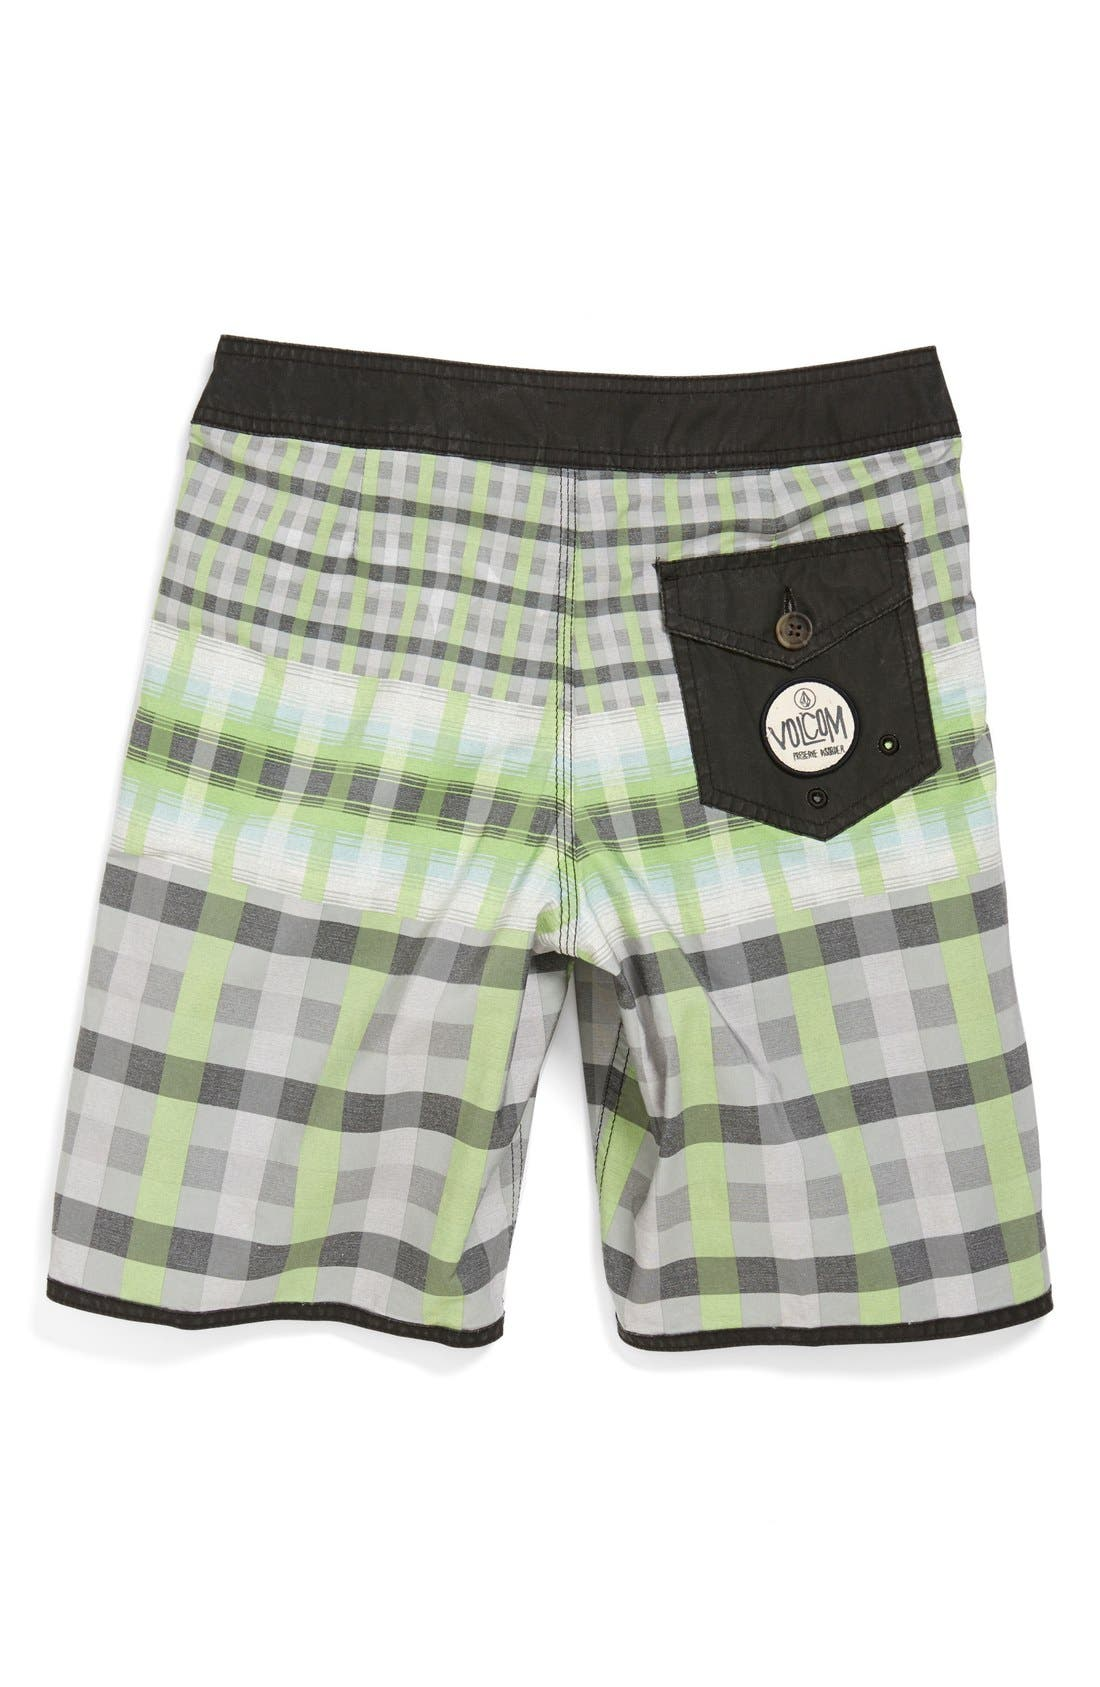 Alternate Image 2  - Volcom 'Scallaid' Board Shorts (Big Boys)